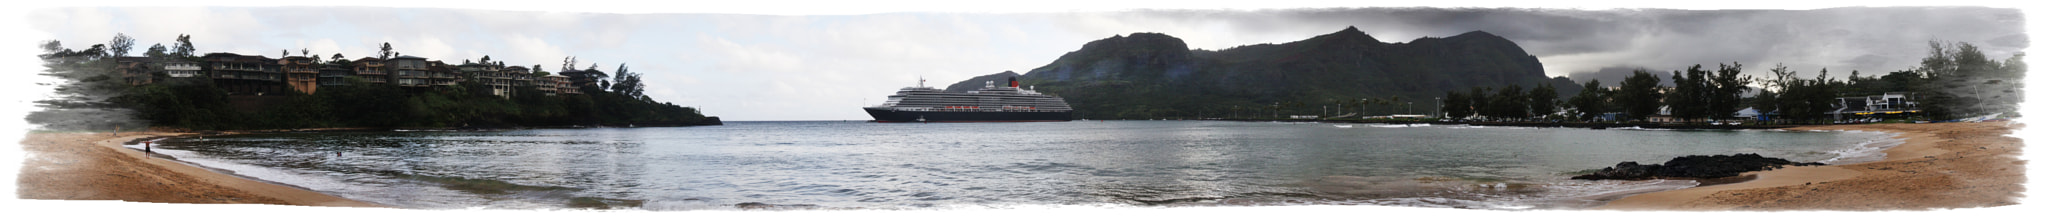 Photograph Queen Victoria leaving Harbor by Mark Hughes on 500px